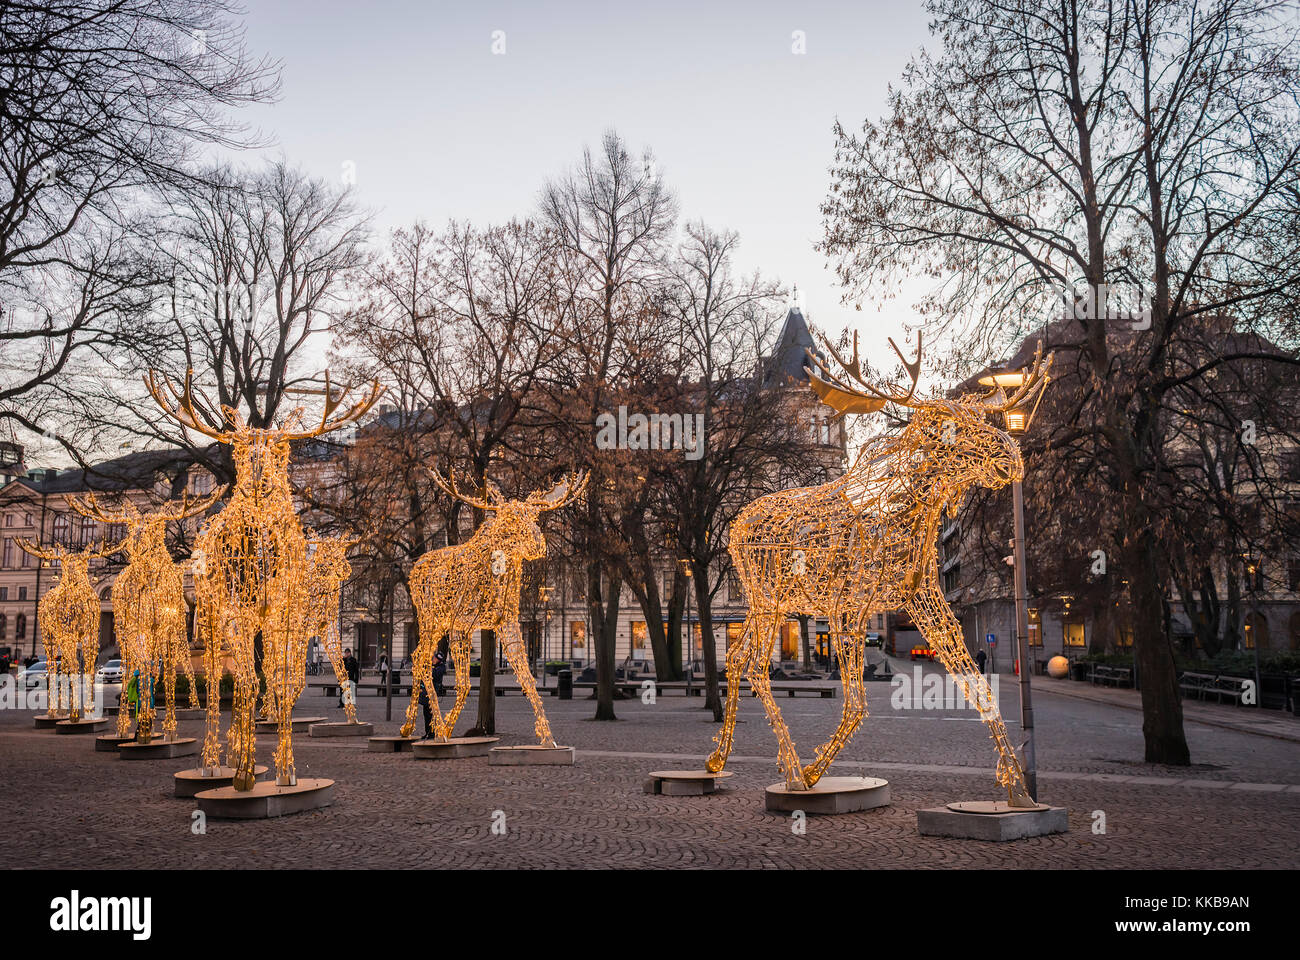 stockholm sweden december 23 2016 group of large moose sculptures made of